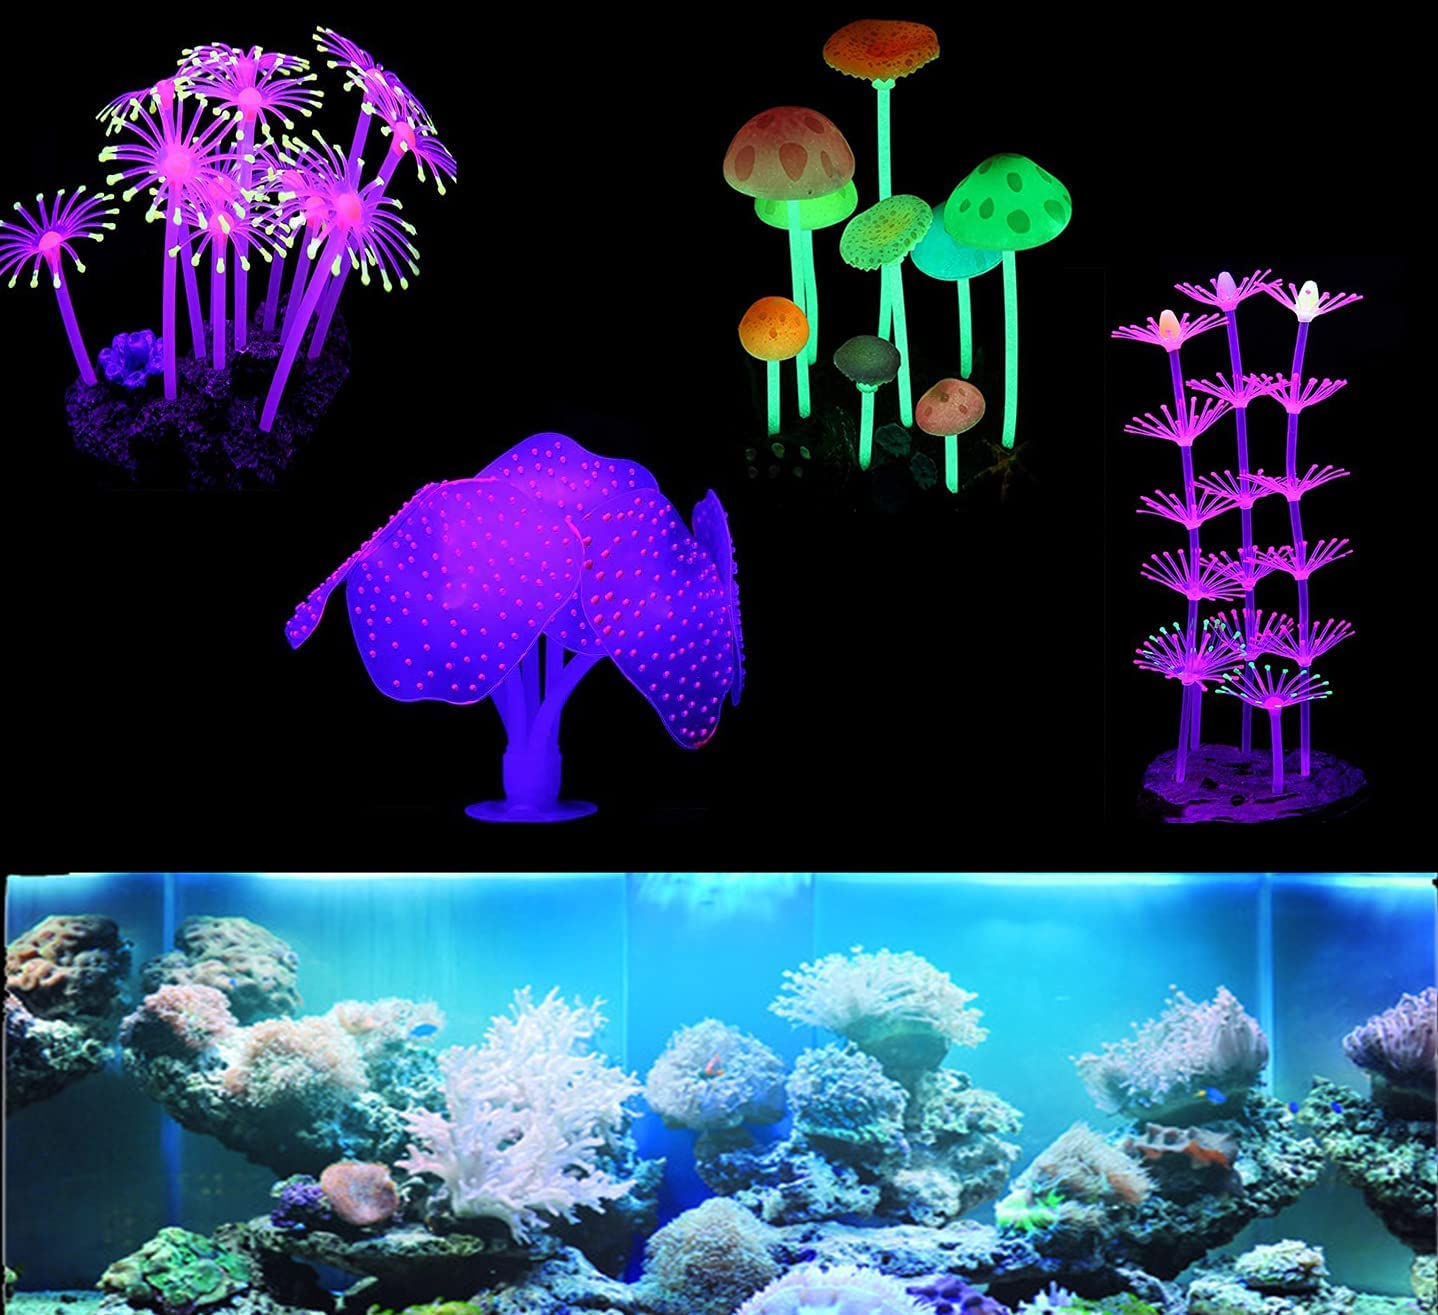 eWINNER 4 Pack Glowing Aquarium Decorations, Ornament Silicone Coral Plant, Reef Glowing, Mushroom and Anemone Simulation for Fish Tank Decorations